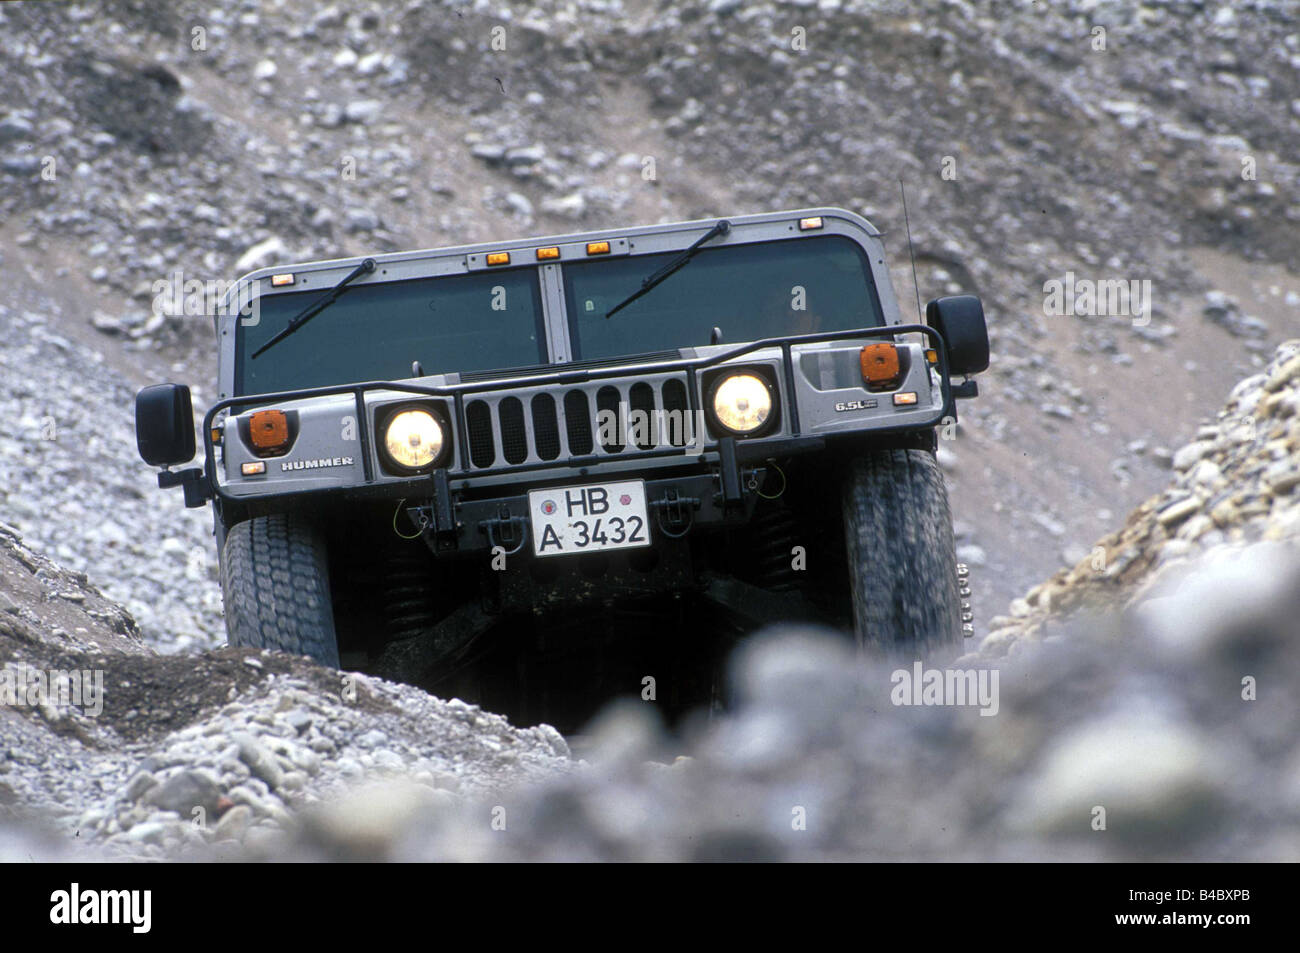 Car, Chevrolet Hummer 6.5L Impression, cross country vehicle, model year 1998-, gray, diagonal from the front, driving, - Stock Image